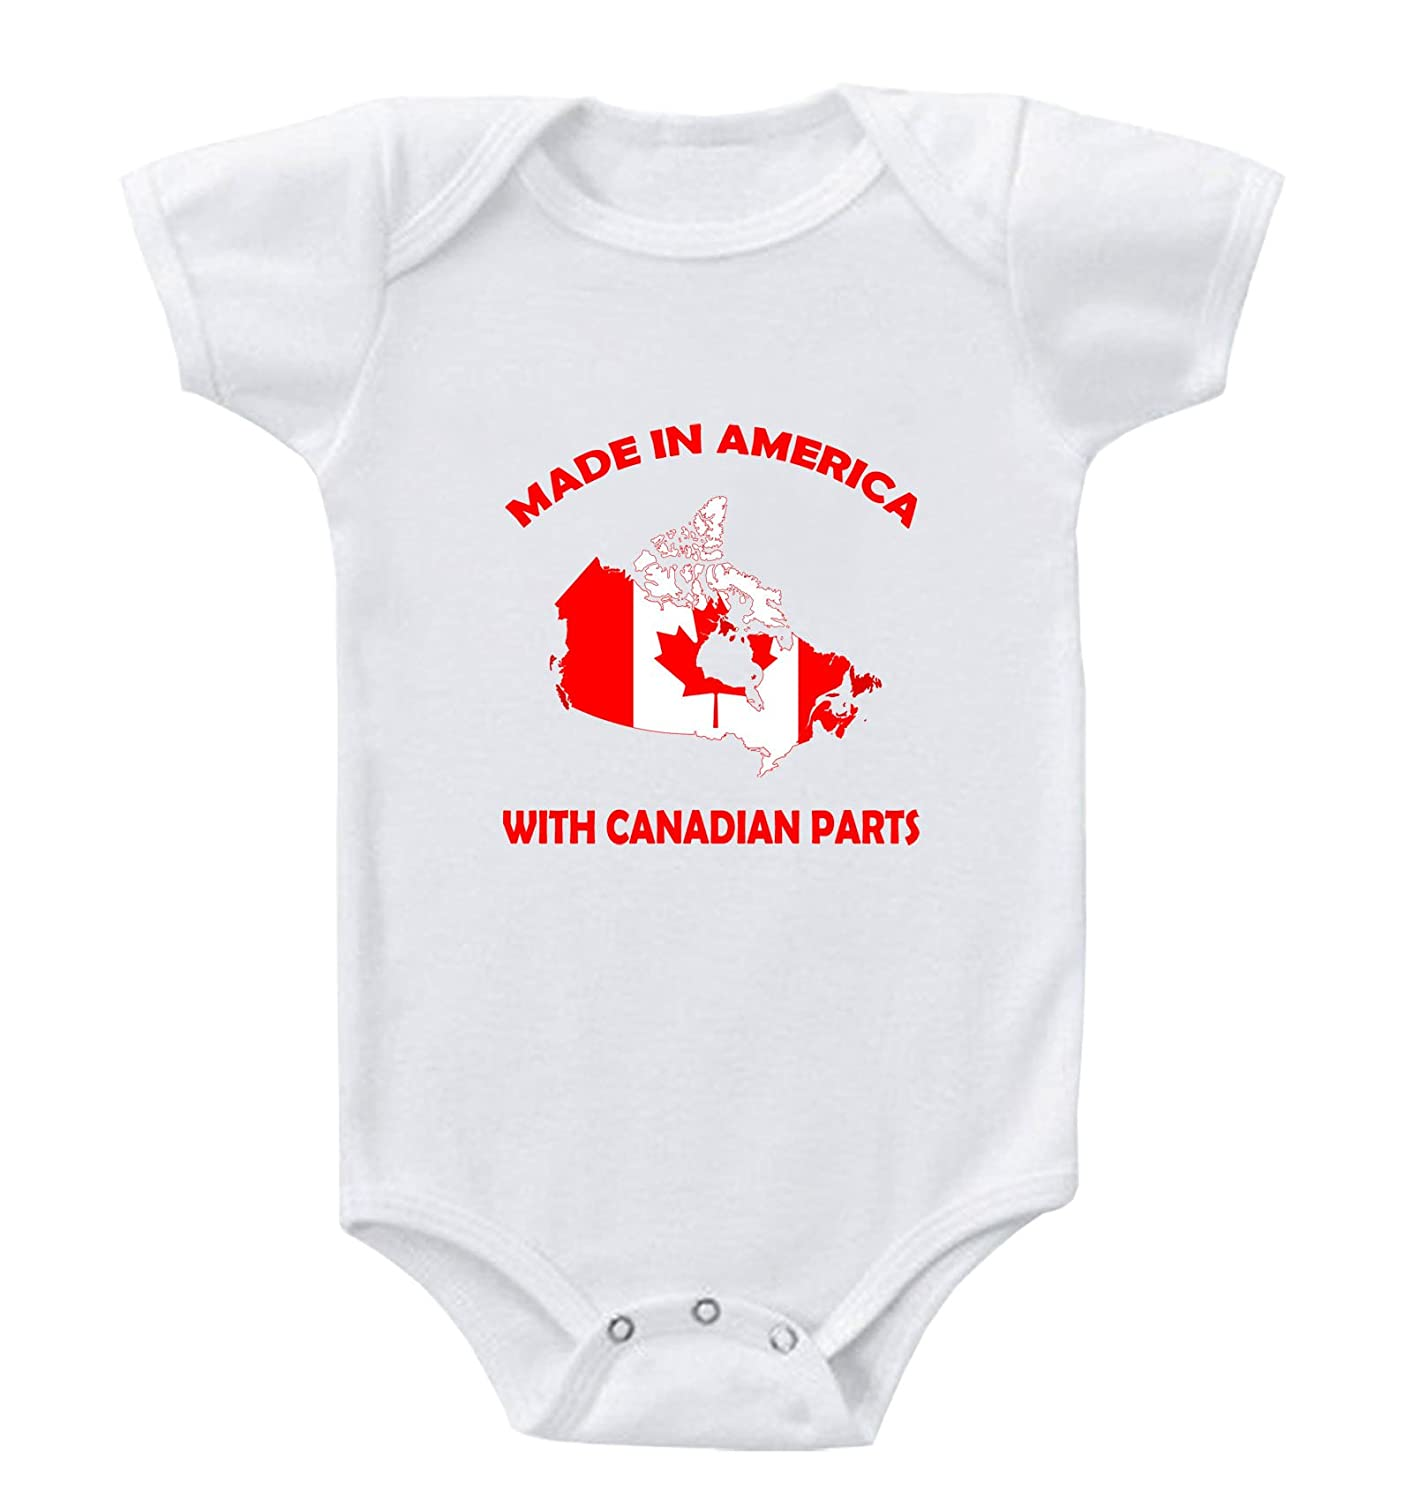 Made In America With Canadian Parts Infant Toddler Baby Bodysuit One Piece BBFLAGMIA006